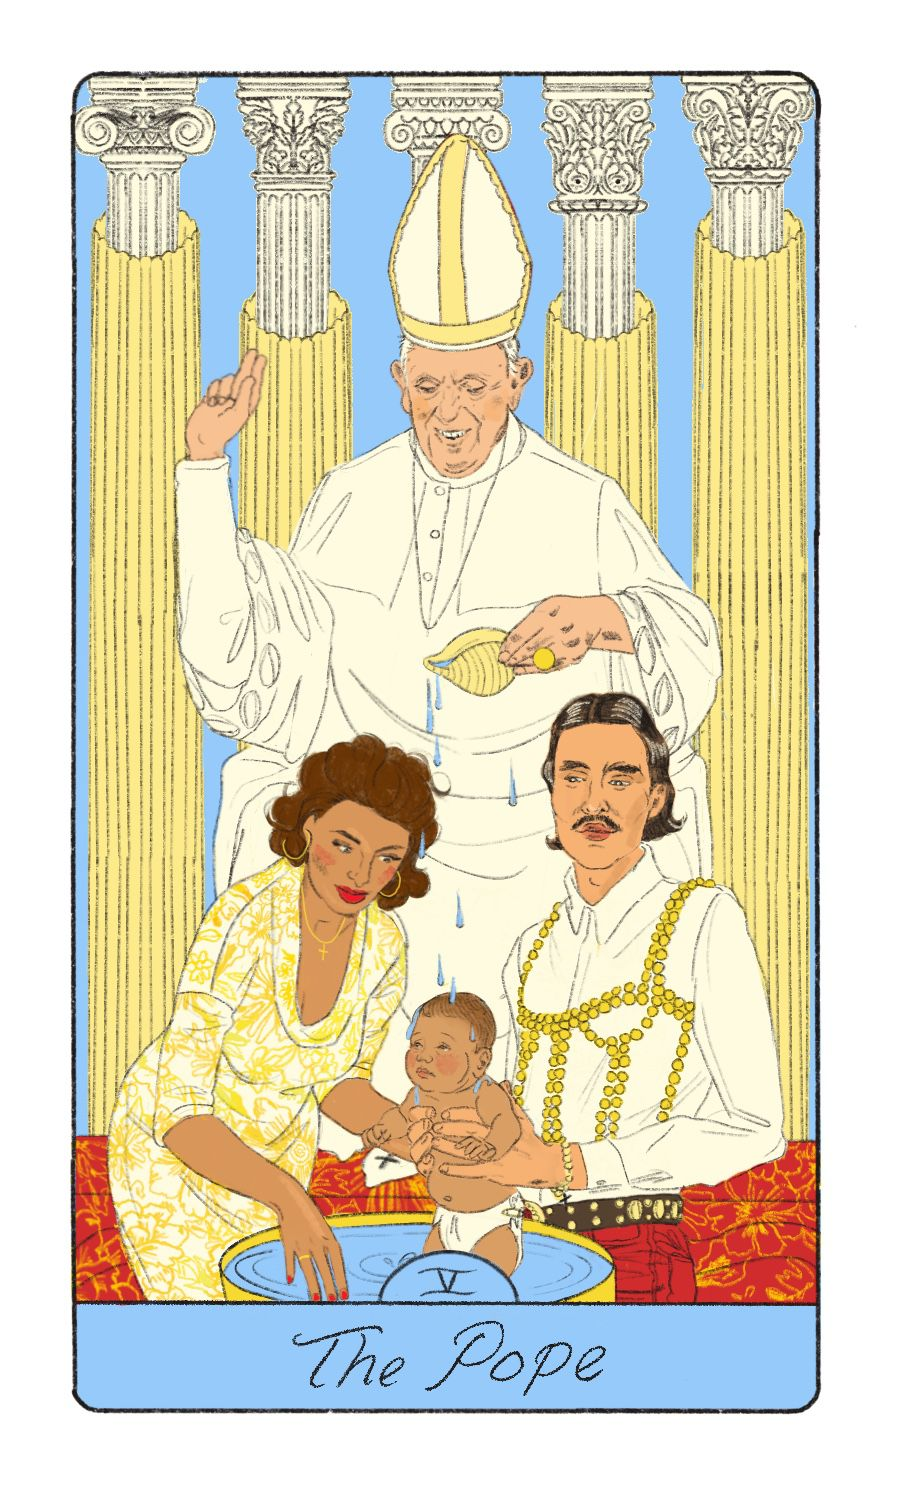 The Pope tarot card, with the pope presiding over a baptism where the godparents are queer. The godfather has long hair, a thin mustache, and is wearing a gold-pleated bralette over his dress shirt, holding his nephew or his niece as the Pope takes a shell pasta shaped container and pours the baptism water over their head